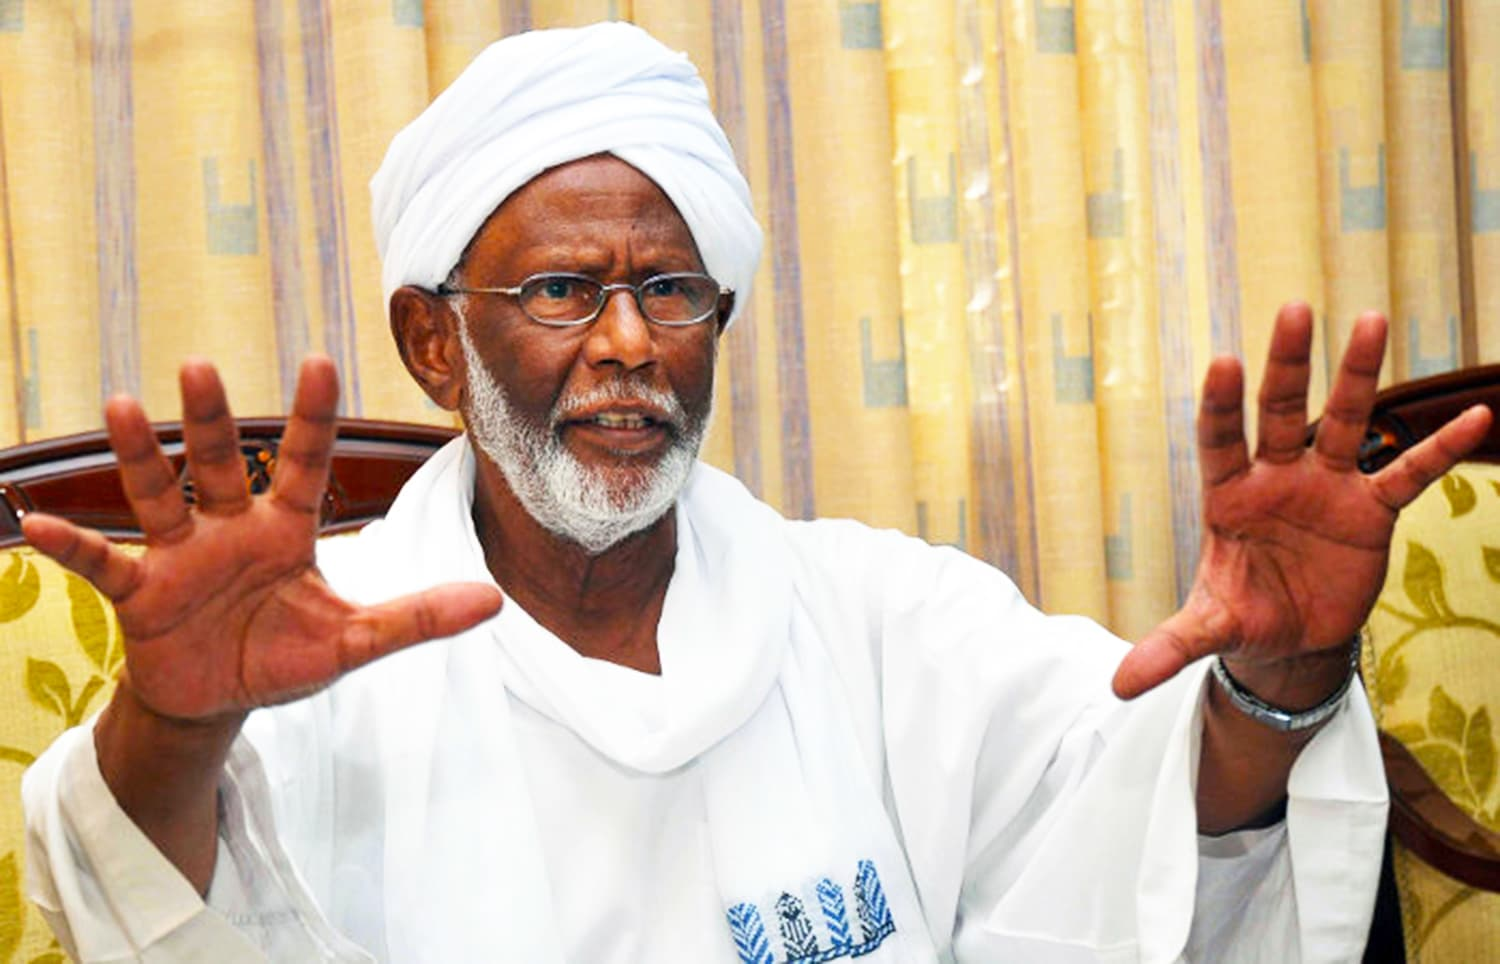 Sudanese Islamic ideologue, Hasan Turabi. — Photo: The Guardian.